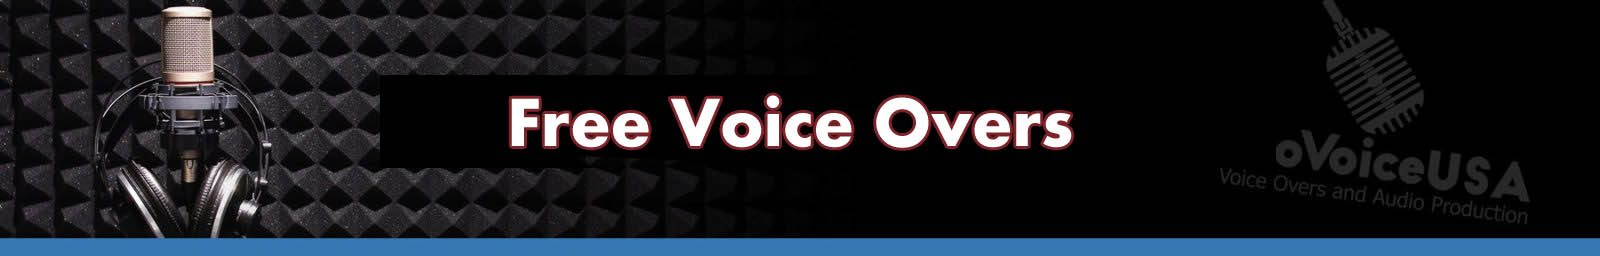 Free Voice Overs   American Voice Recording Service   ProVoice USA